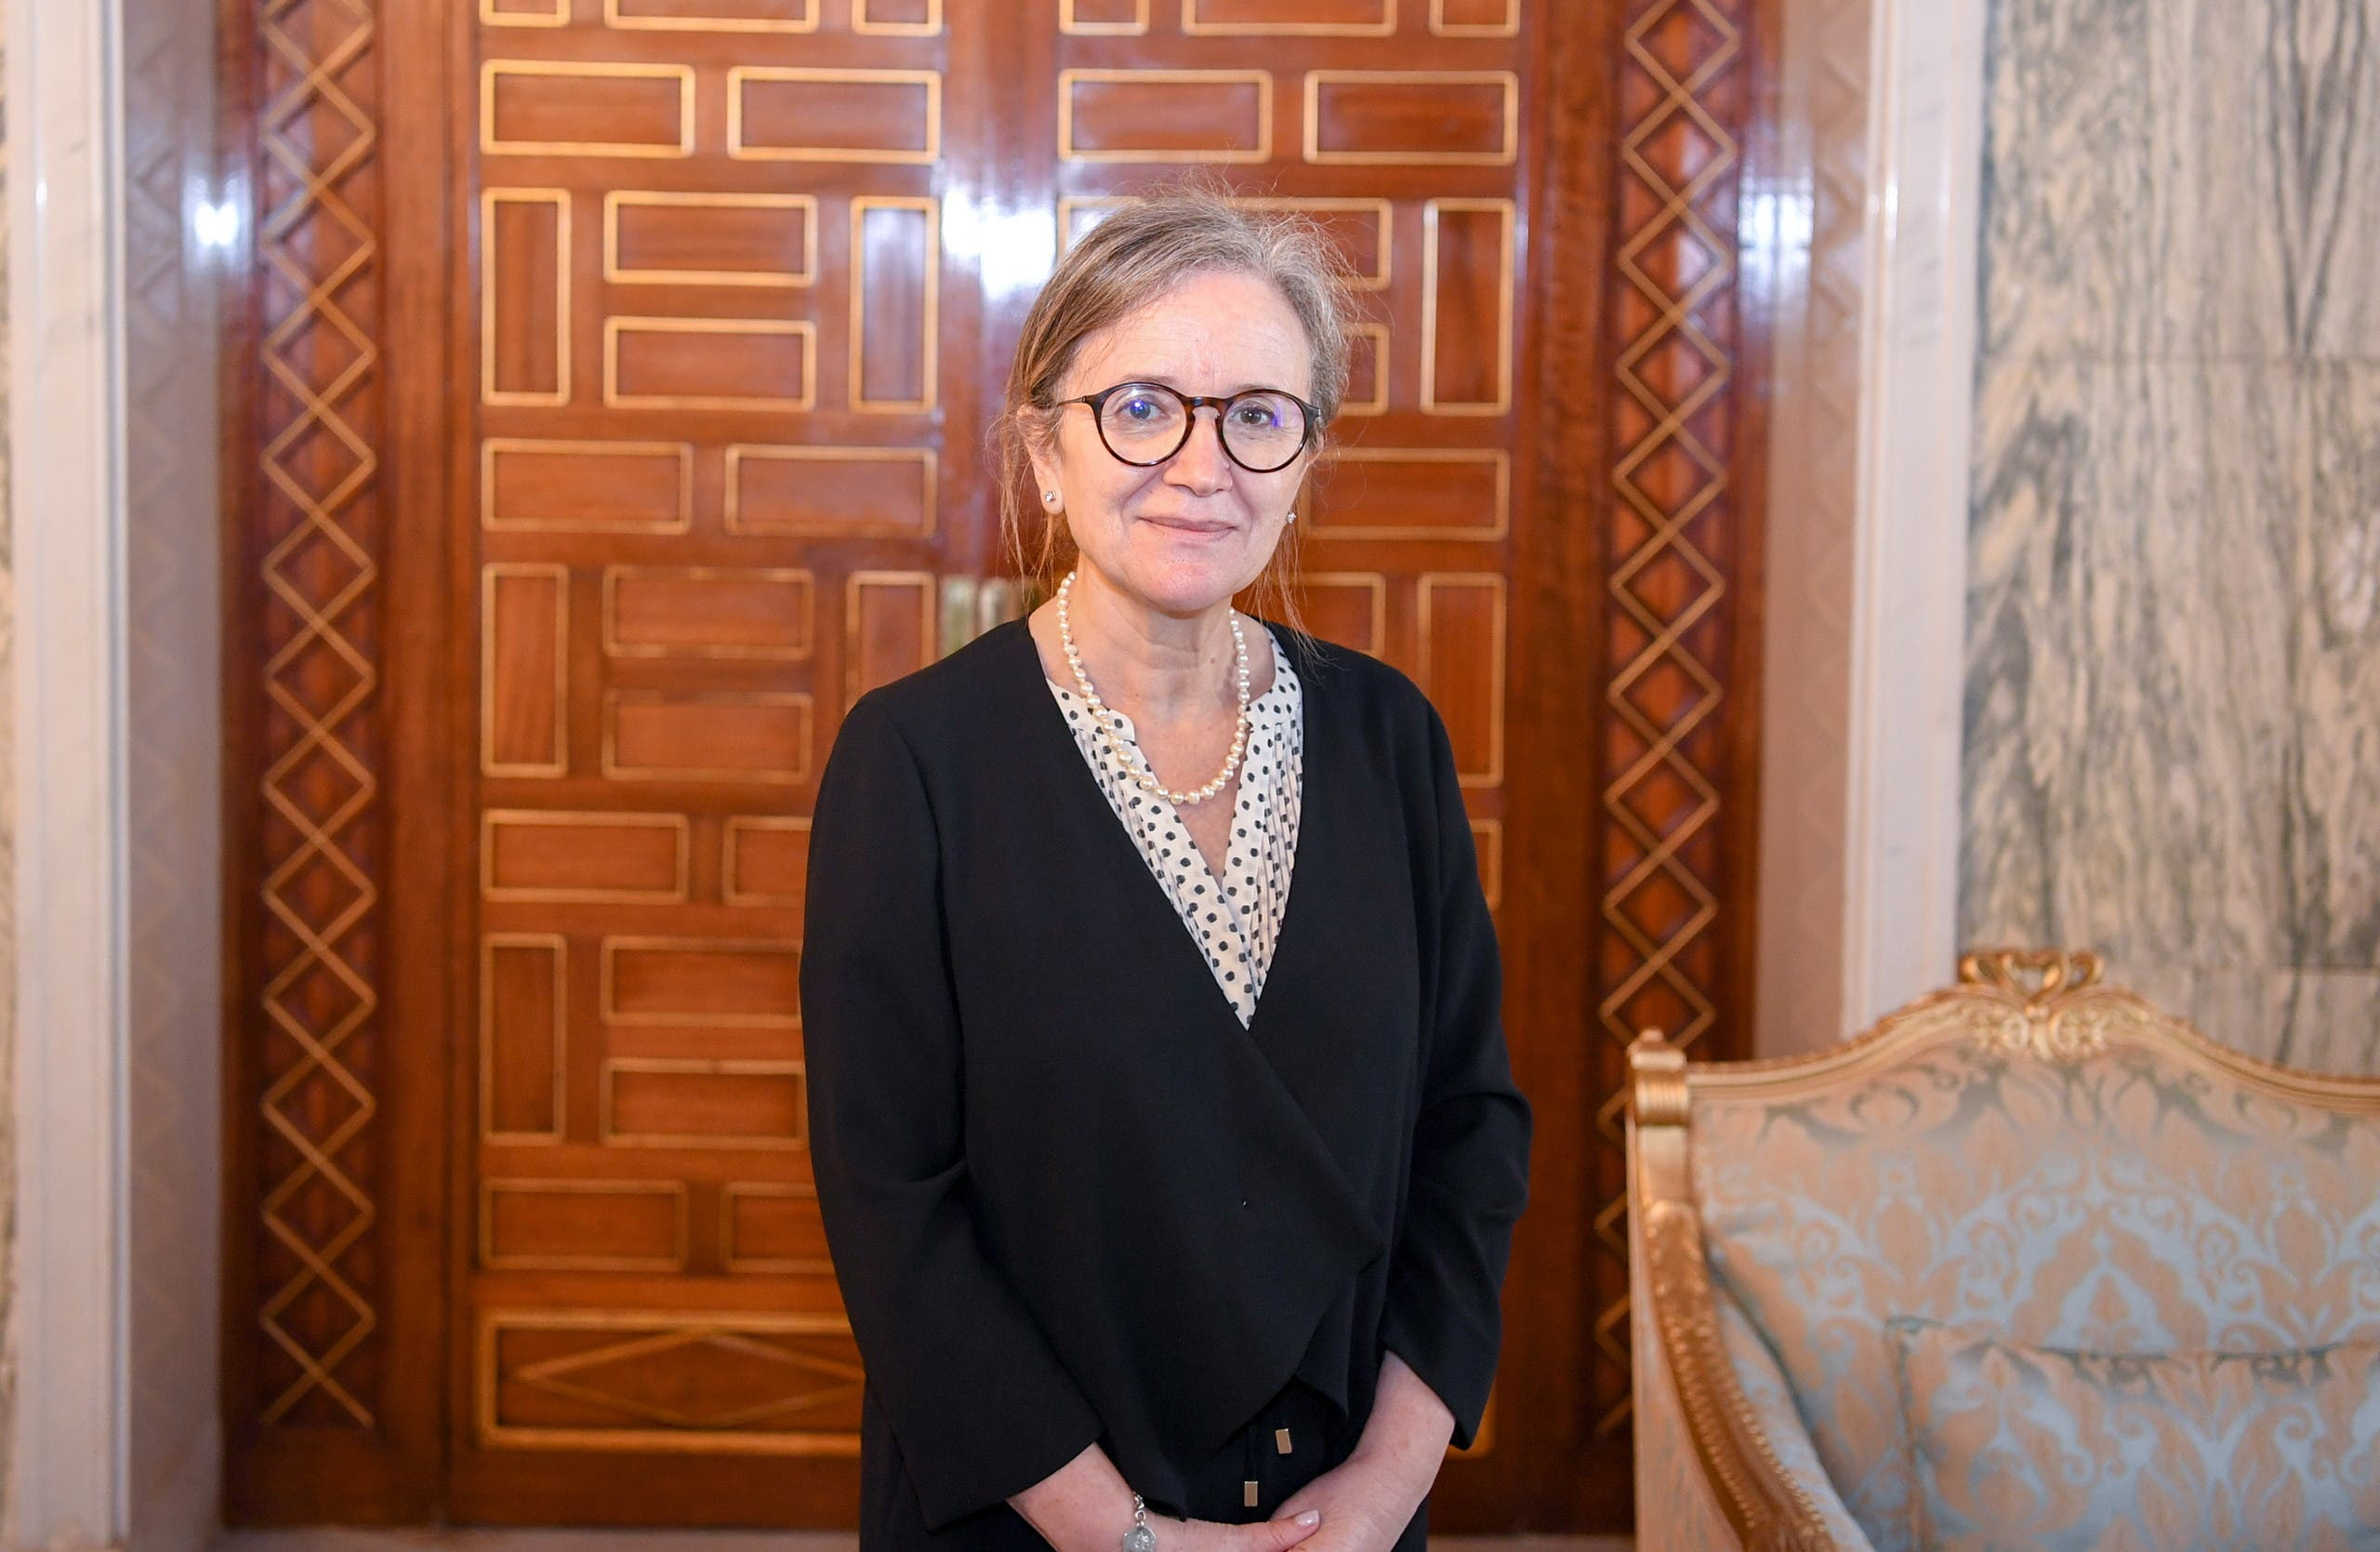 Newly appointed Prime Minister Najla Bouden Romdhane poses for a picture during her meeting with Tunisia's President Kais Saied, in Tunis, Tunisia September 29, 2021. (Reuters)